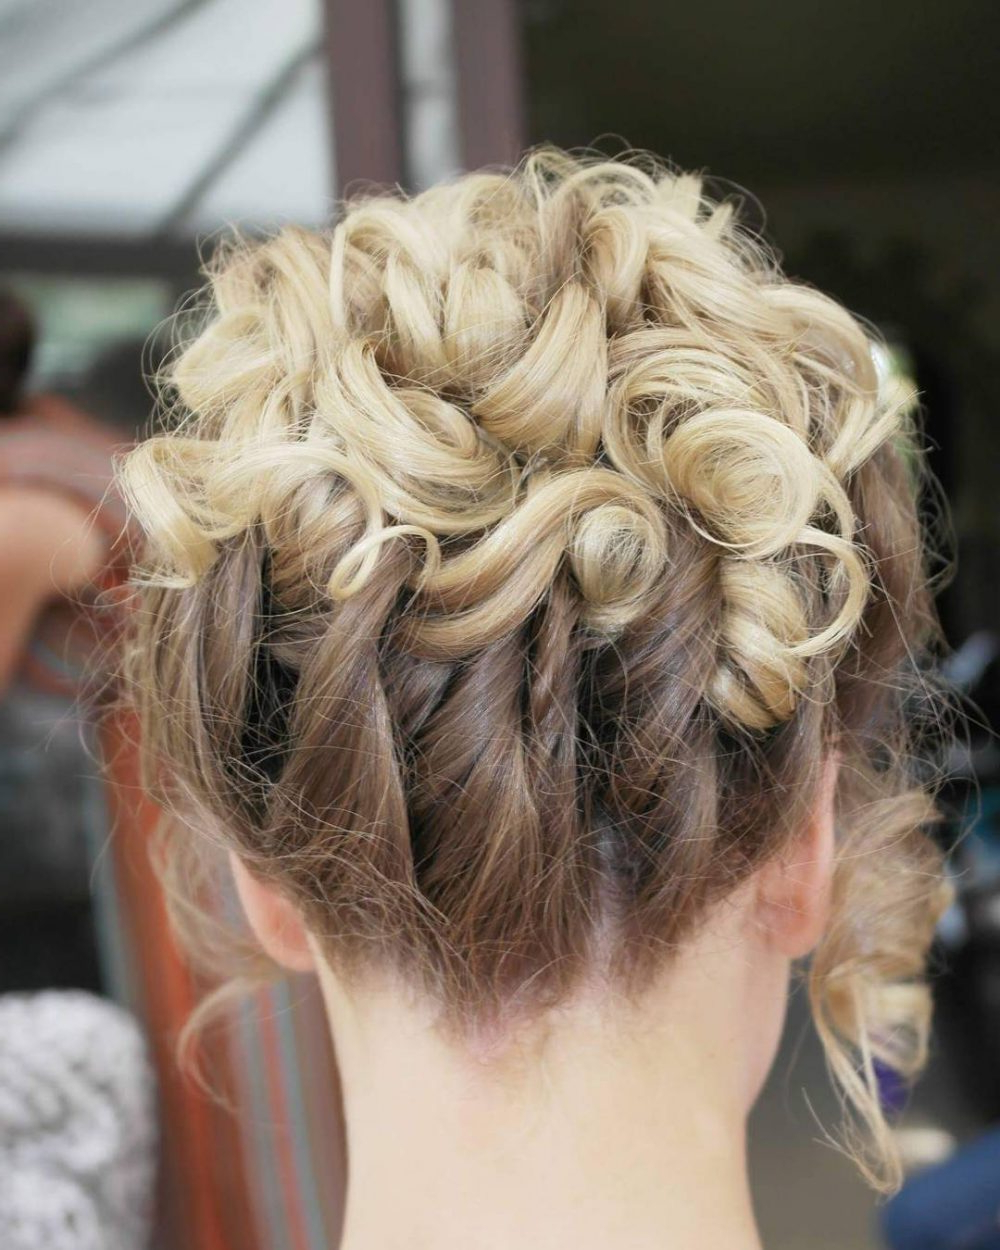 18 Stunning Curly Prom Hairstyles For 2019 – Updos, Down Do's & Braids! With Favorite Easy Curled Prom Updos (View 3 of 20)